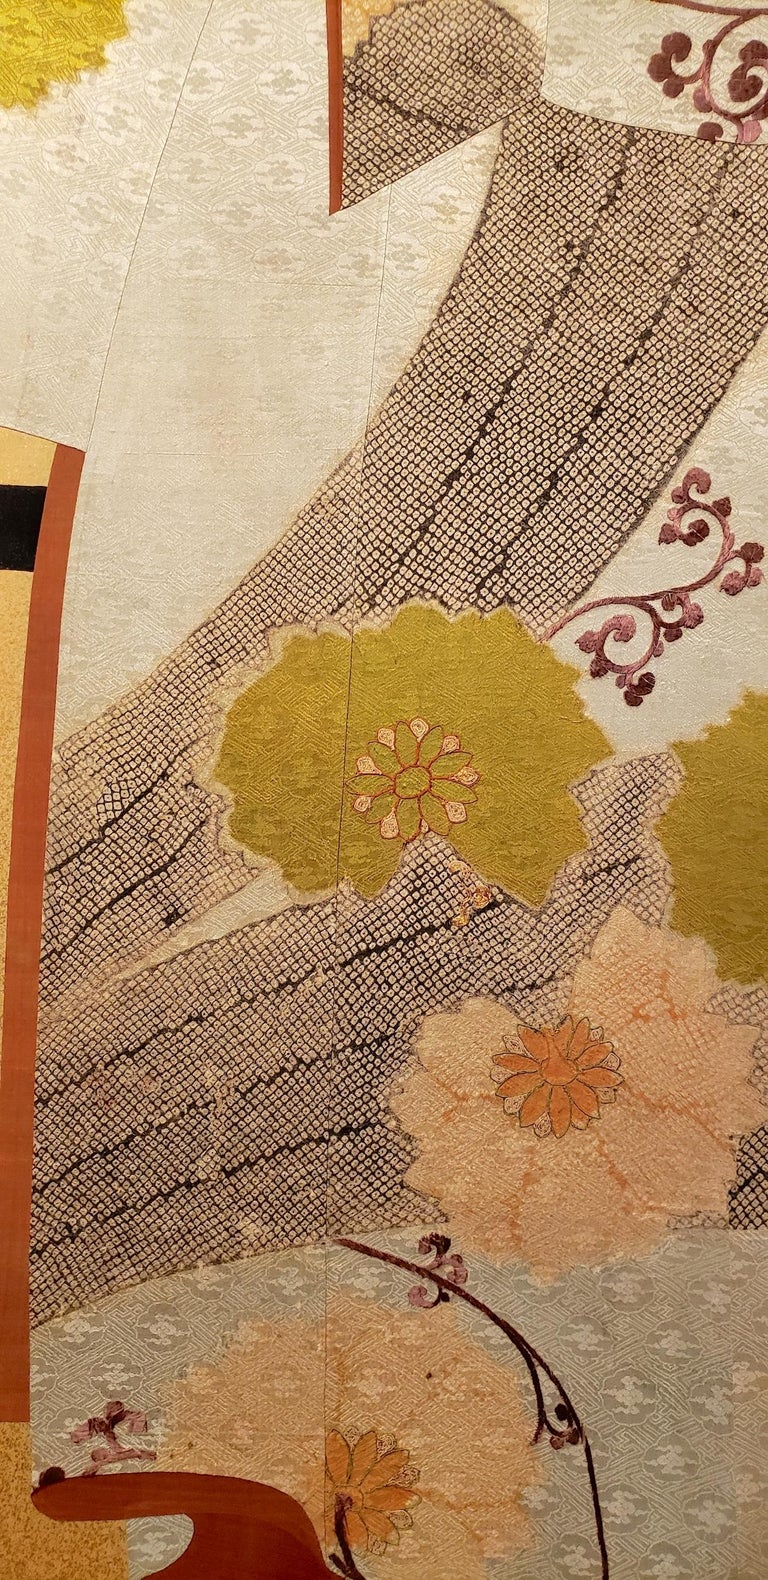 Japanese Two Panel Screen: Tagasode (Whose Sleeves?) In Good Condition For Sale In Hudson, NY